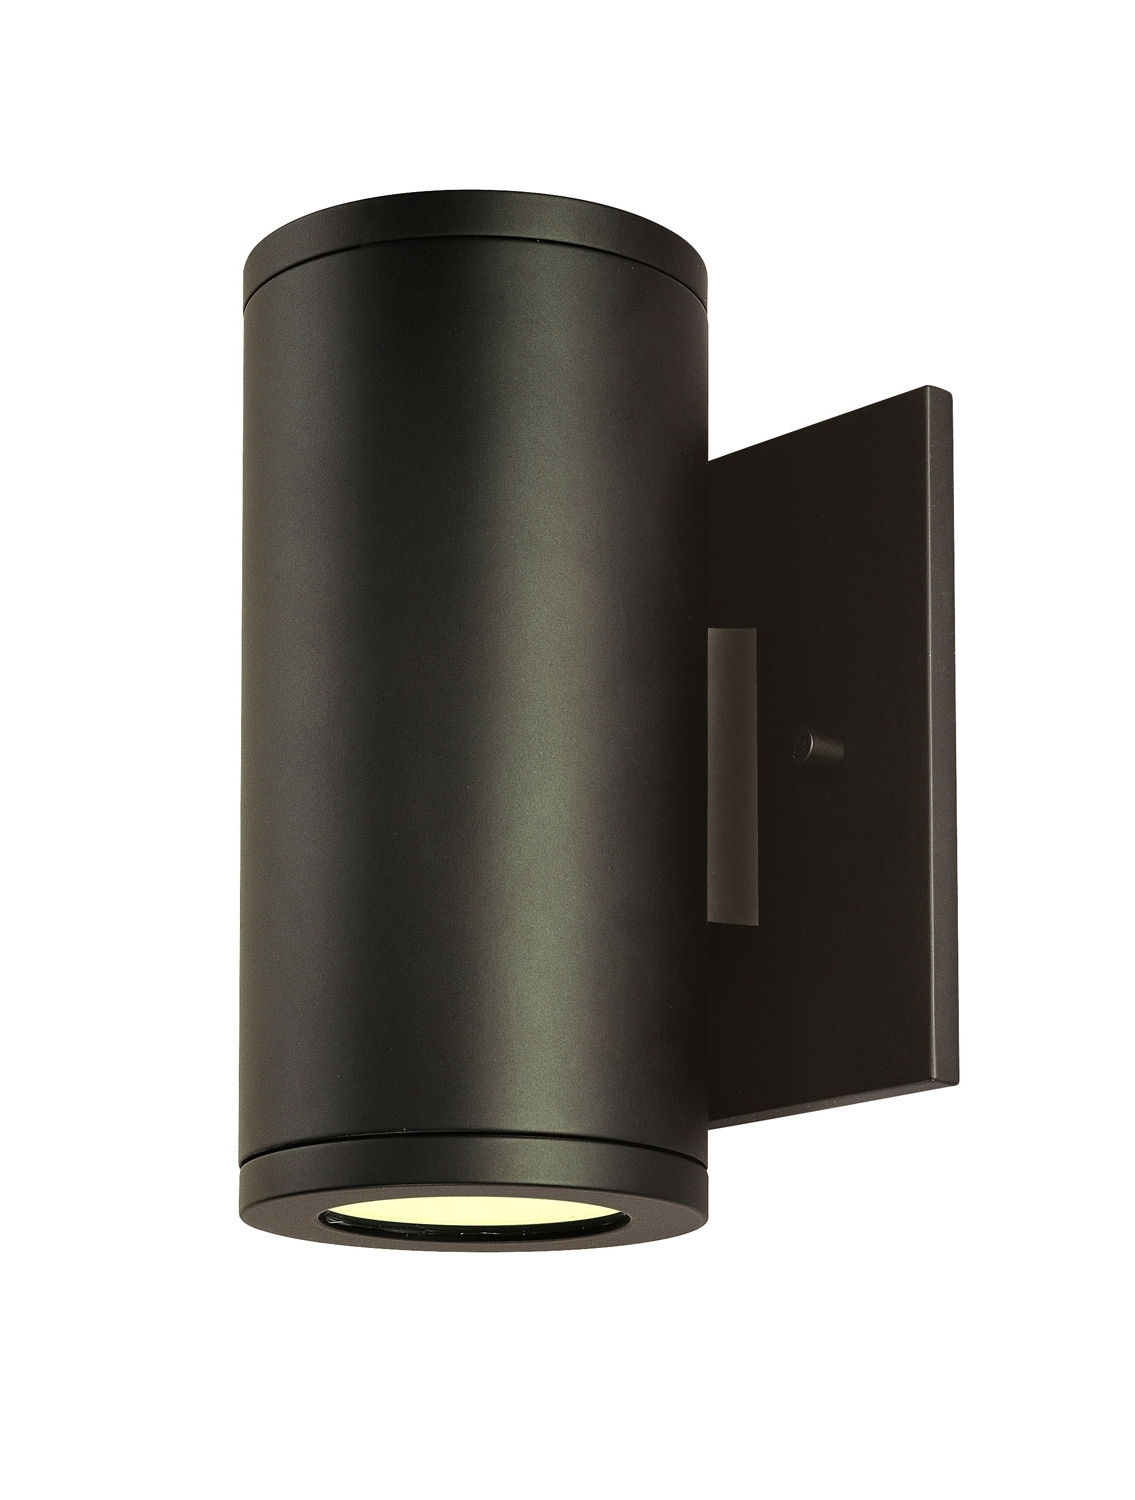 Favorite Outdoor Wall Mount Lighting Fixtures Regarding Light : Dark Wall Mounted Outdoor Lighting Black Simple Ideas (View 2 of 20)